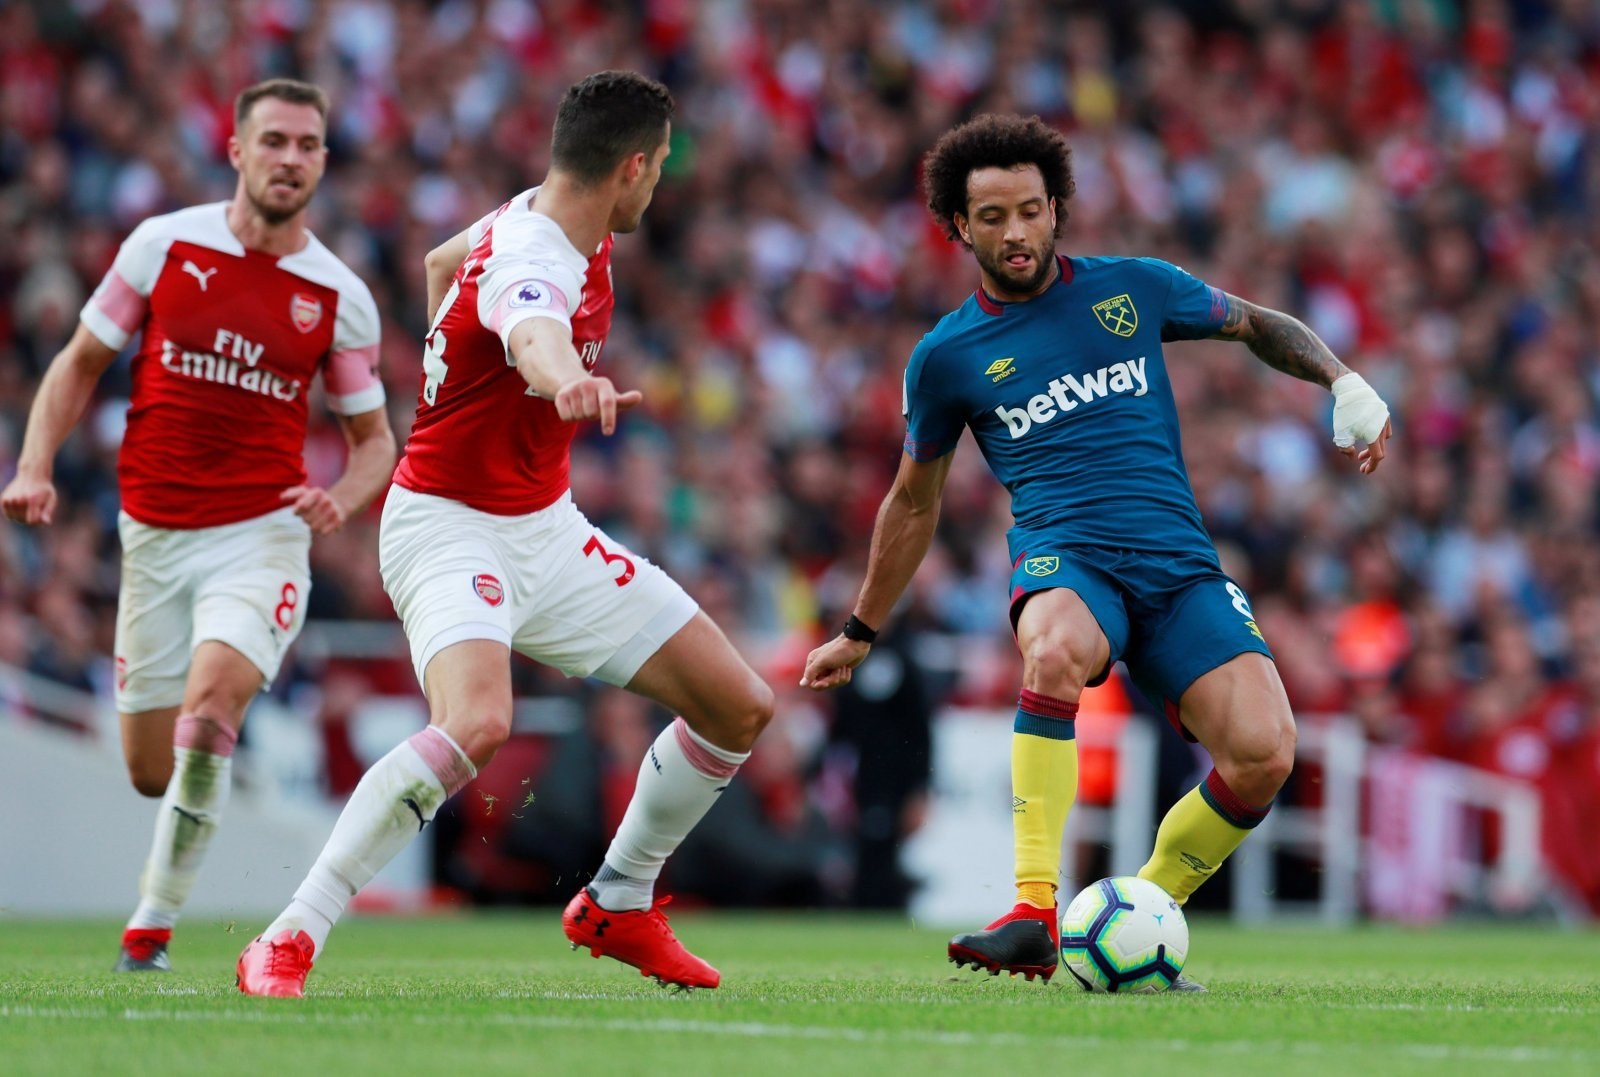 Monreal and Welbeck scored for Arsenal, but Xhaka was their unsung hero in West Ham win